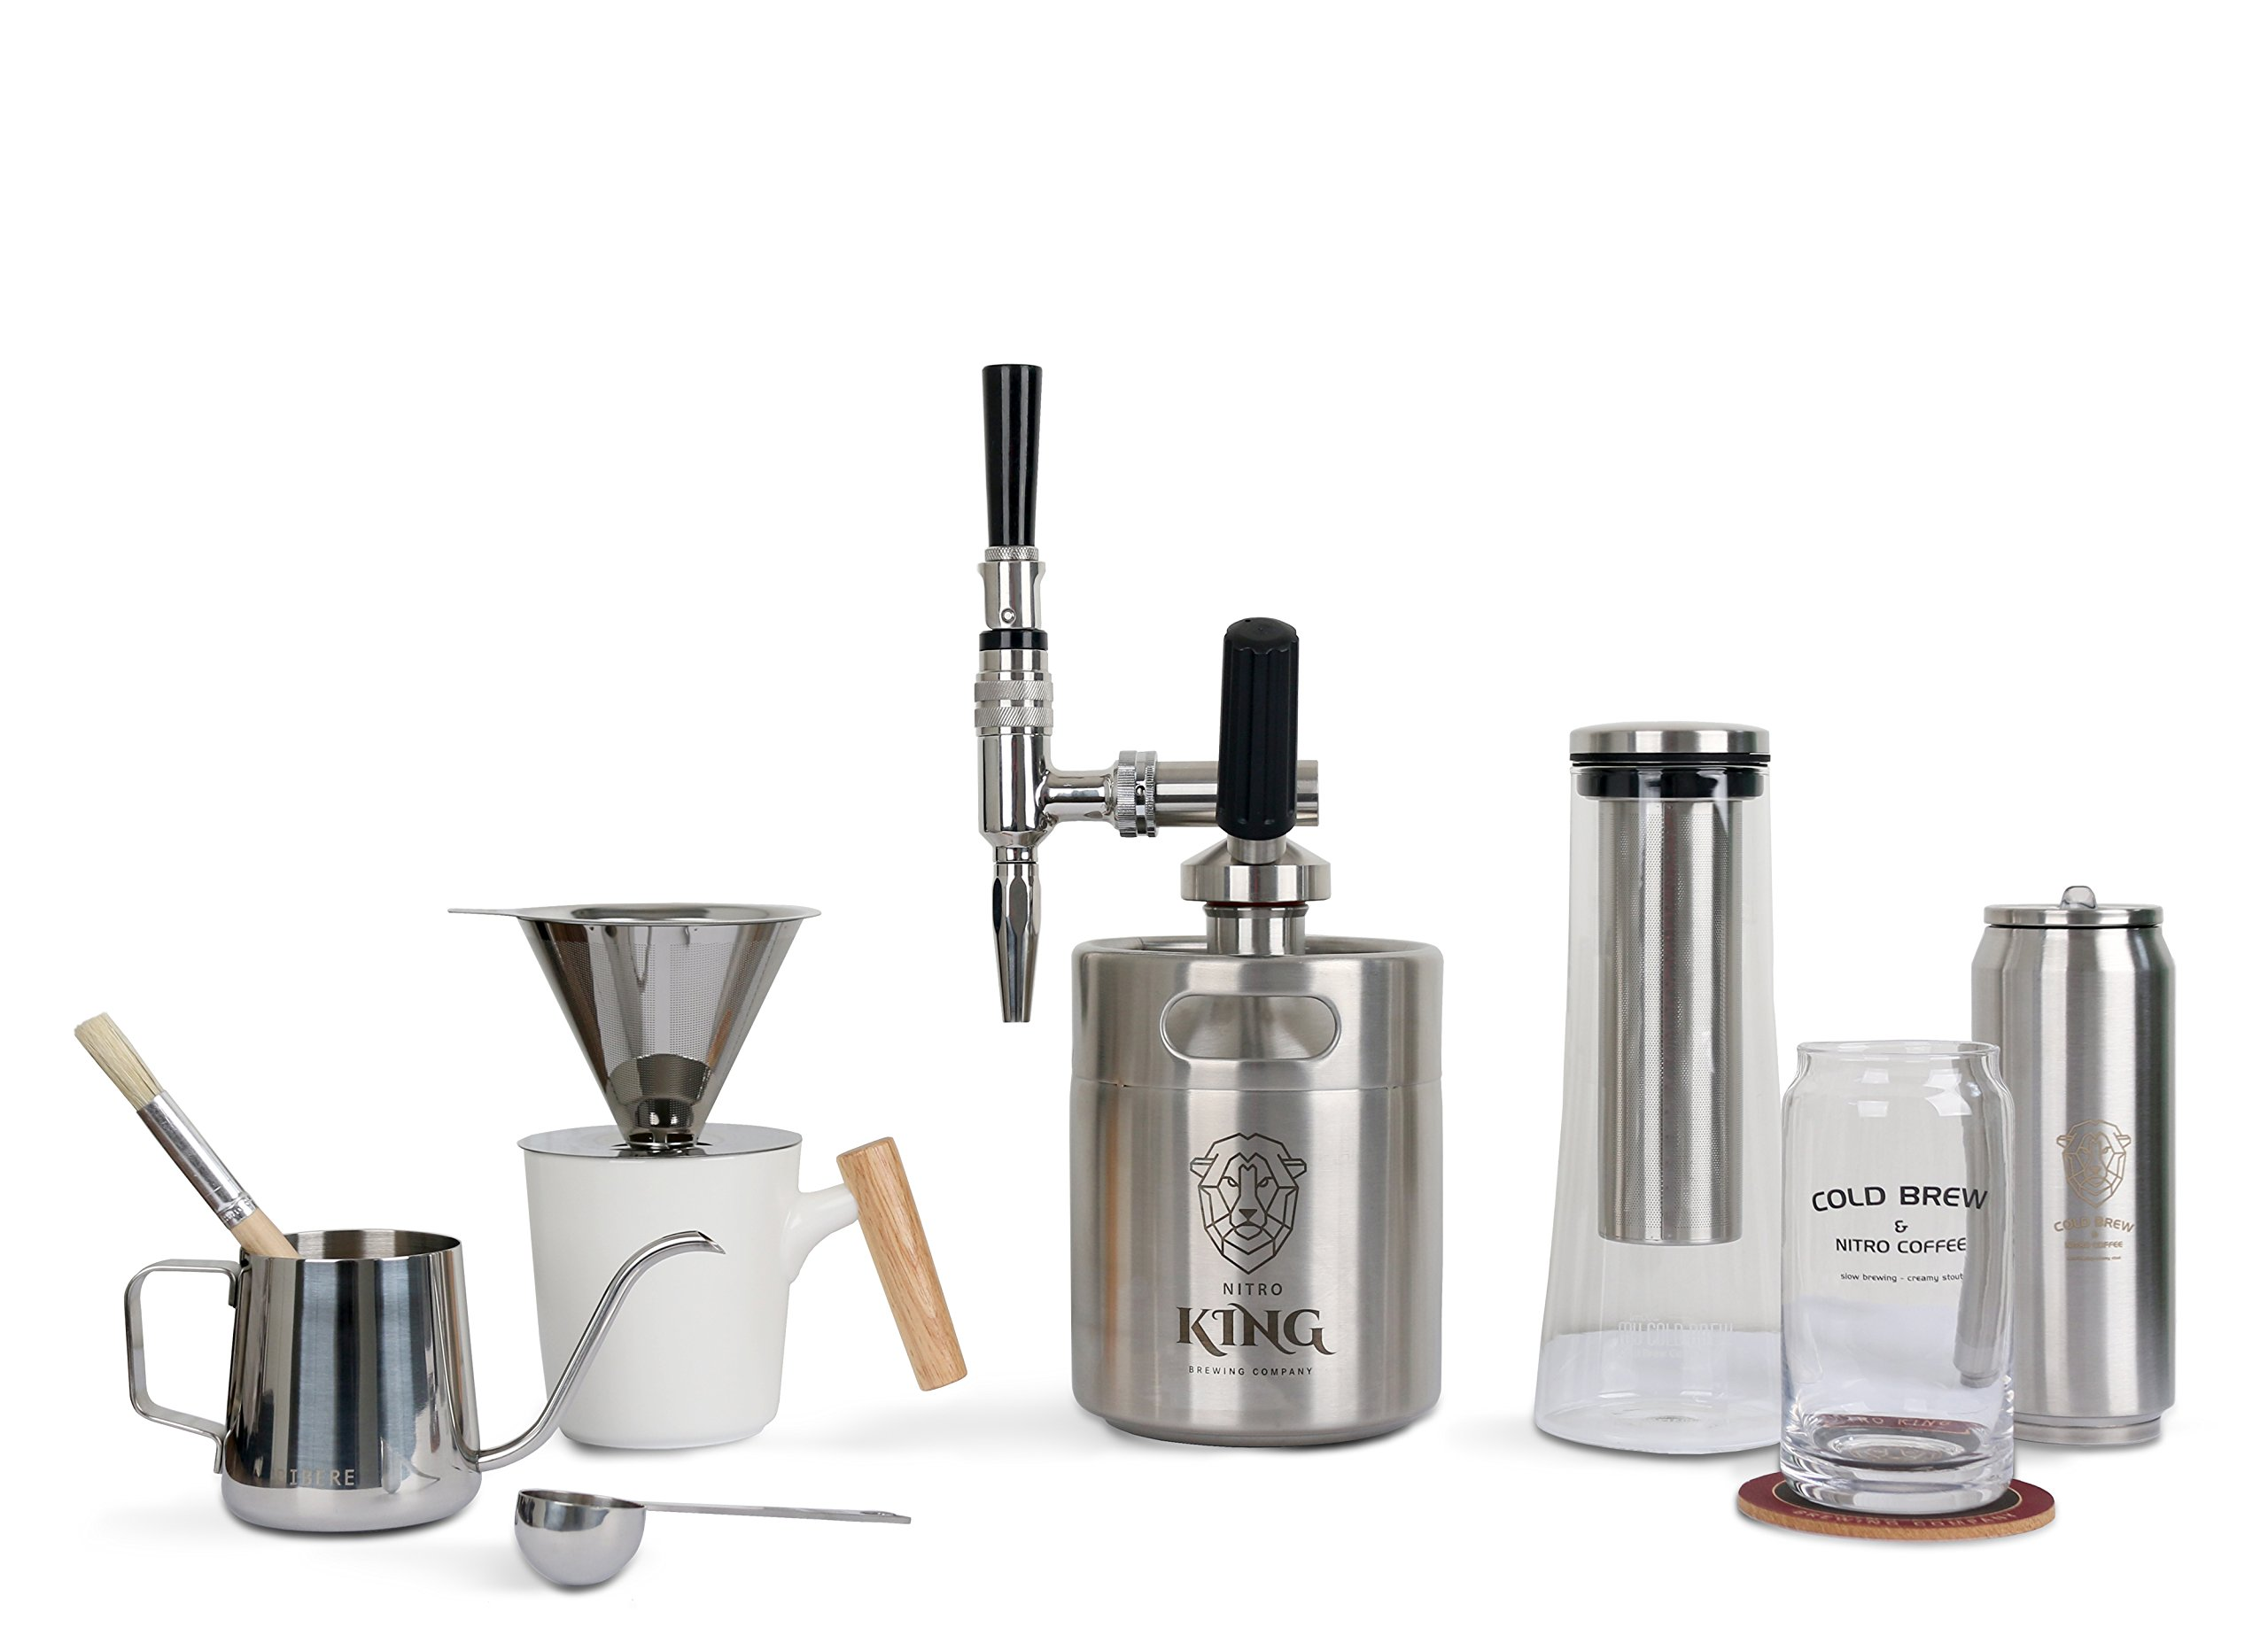 Unplugged Coffee Tools - Pour Over Coffee Maker - Glass Cold Brew Coffee Maker - 64oz Nitro Cold Brew Coffee Maker